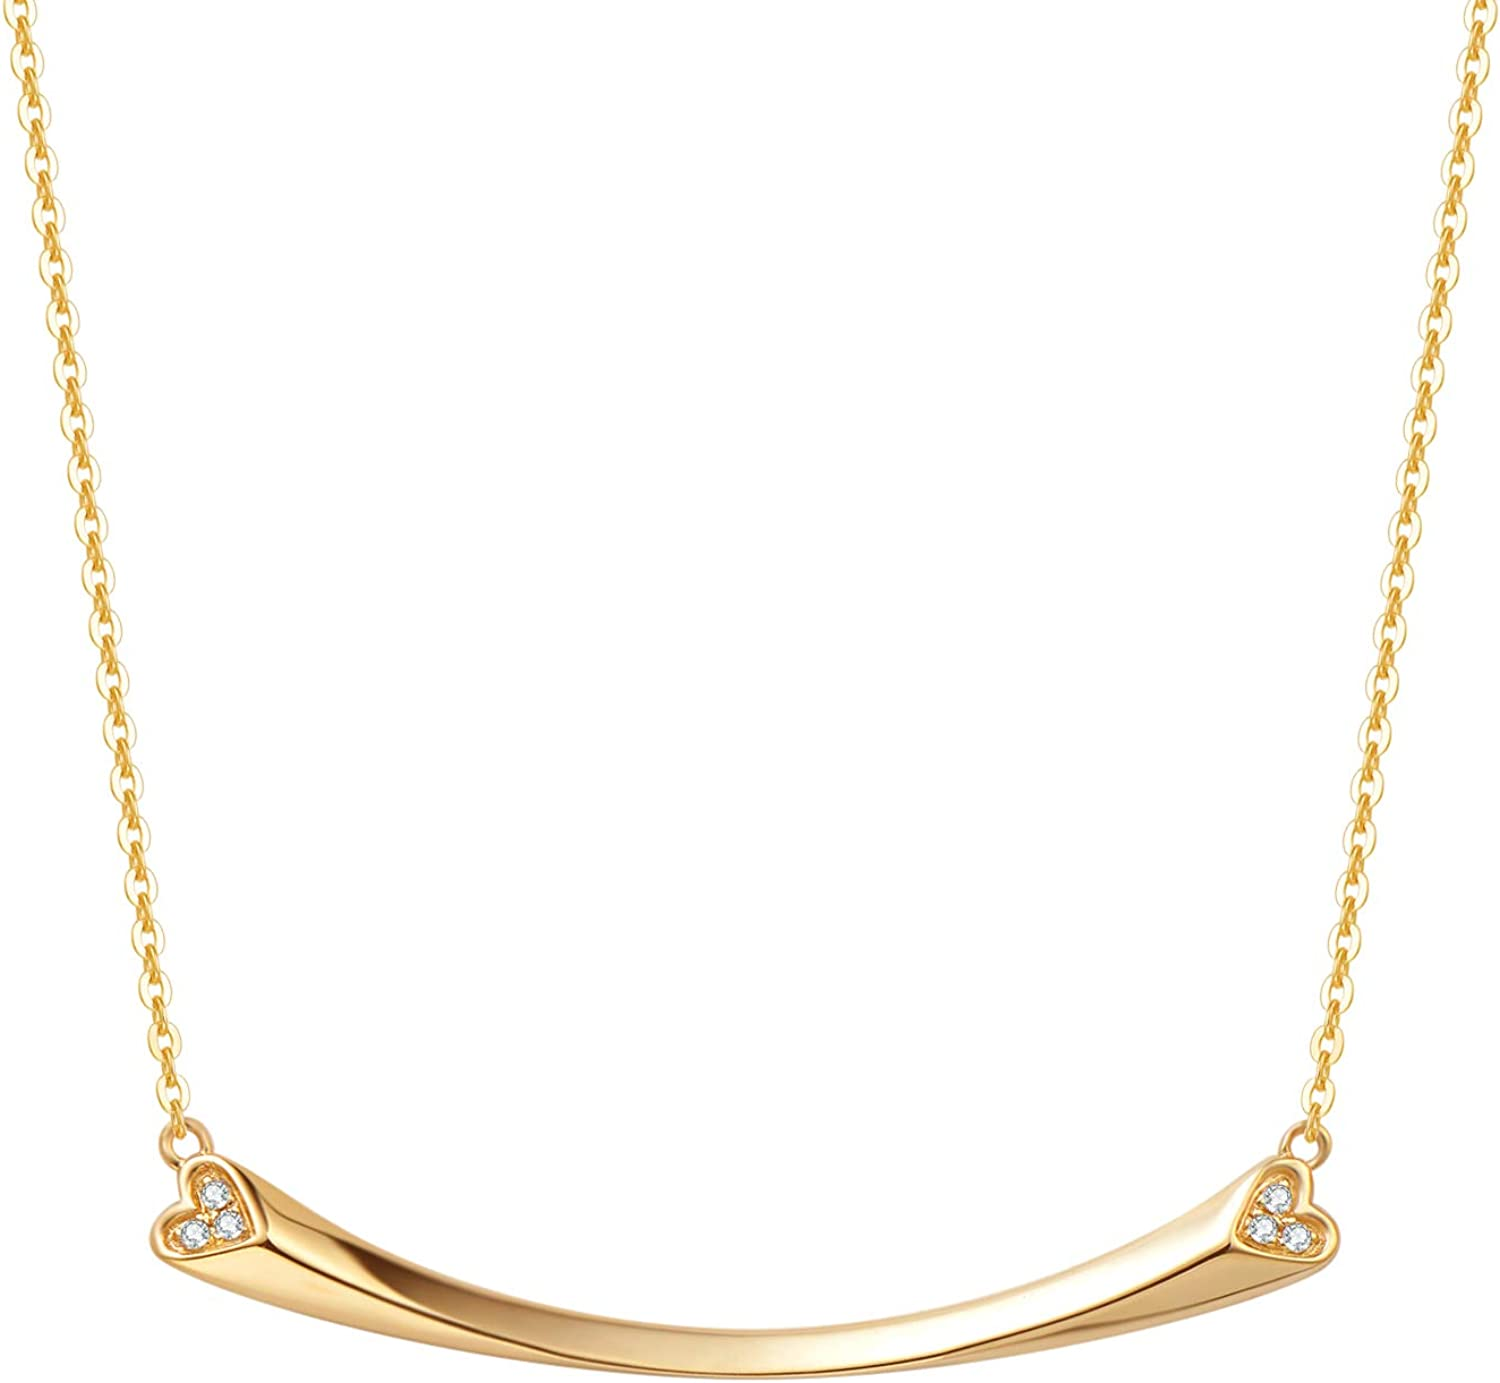 FANCIME 18K Fees free!! Real Solid Gold Smile Bar outlet Heart Genu 0.03ct Necklace